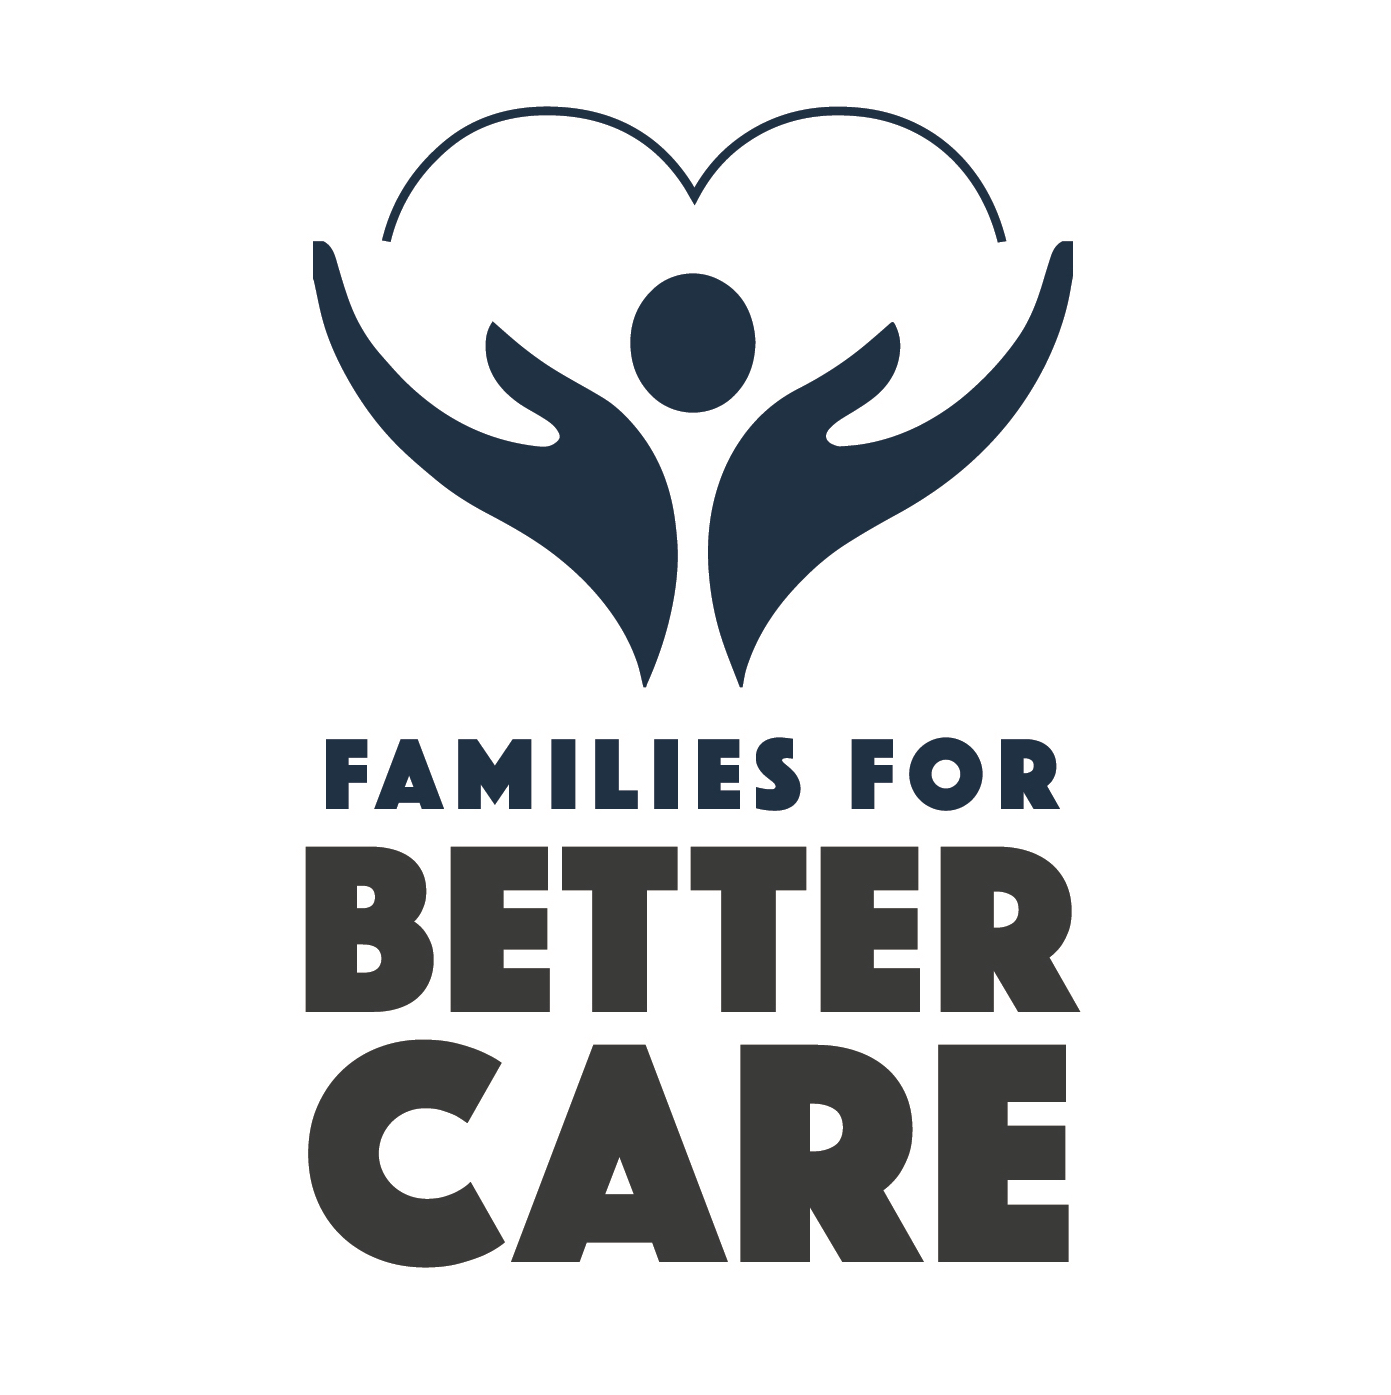 Families for Better Care COVID19 Nursing Homes Families for Better Care Brian Lee Image